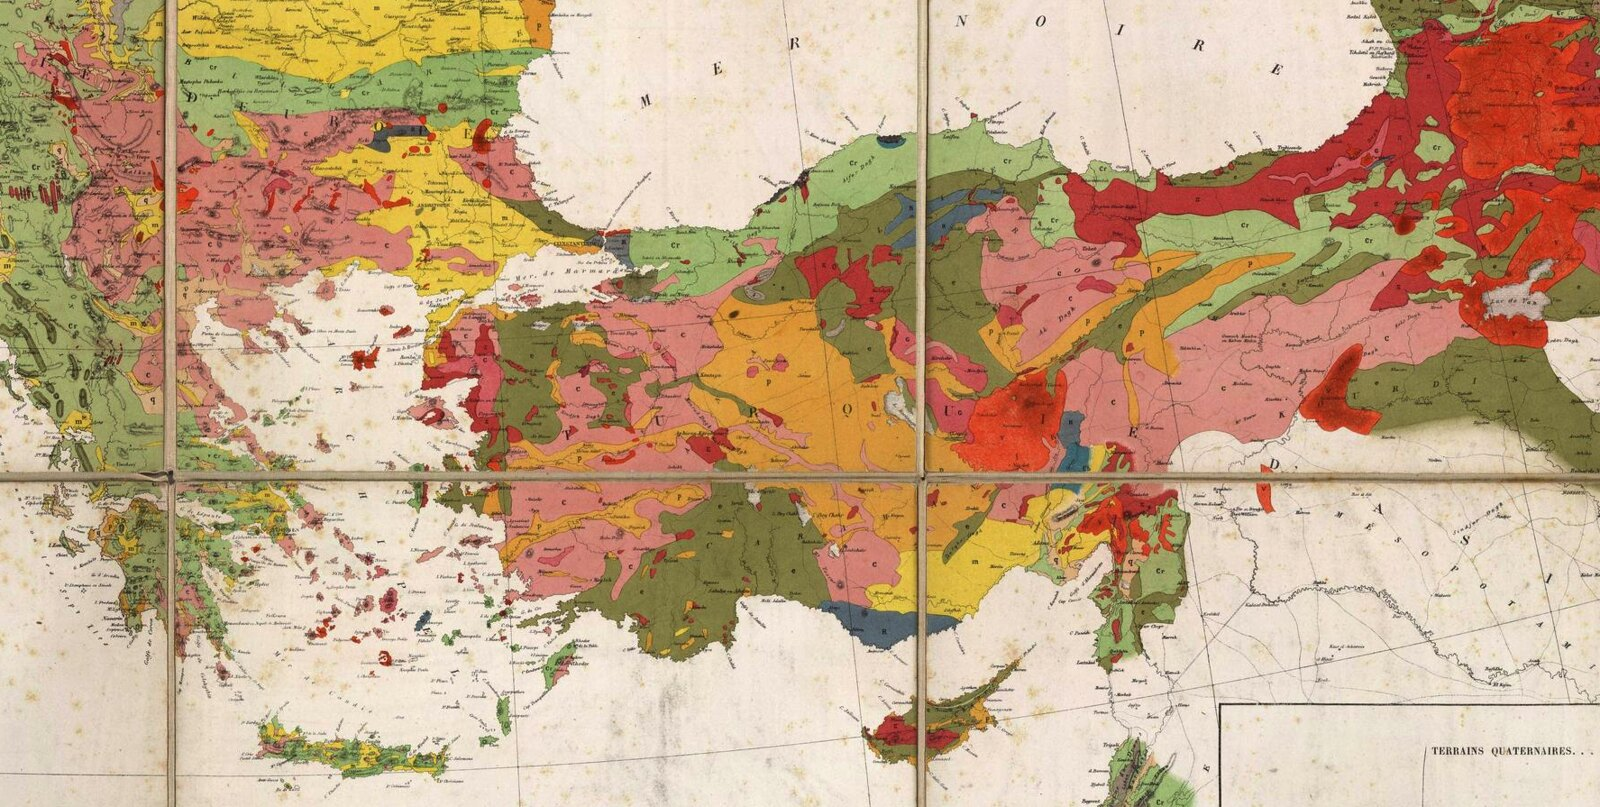 geological map of turkey